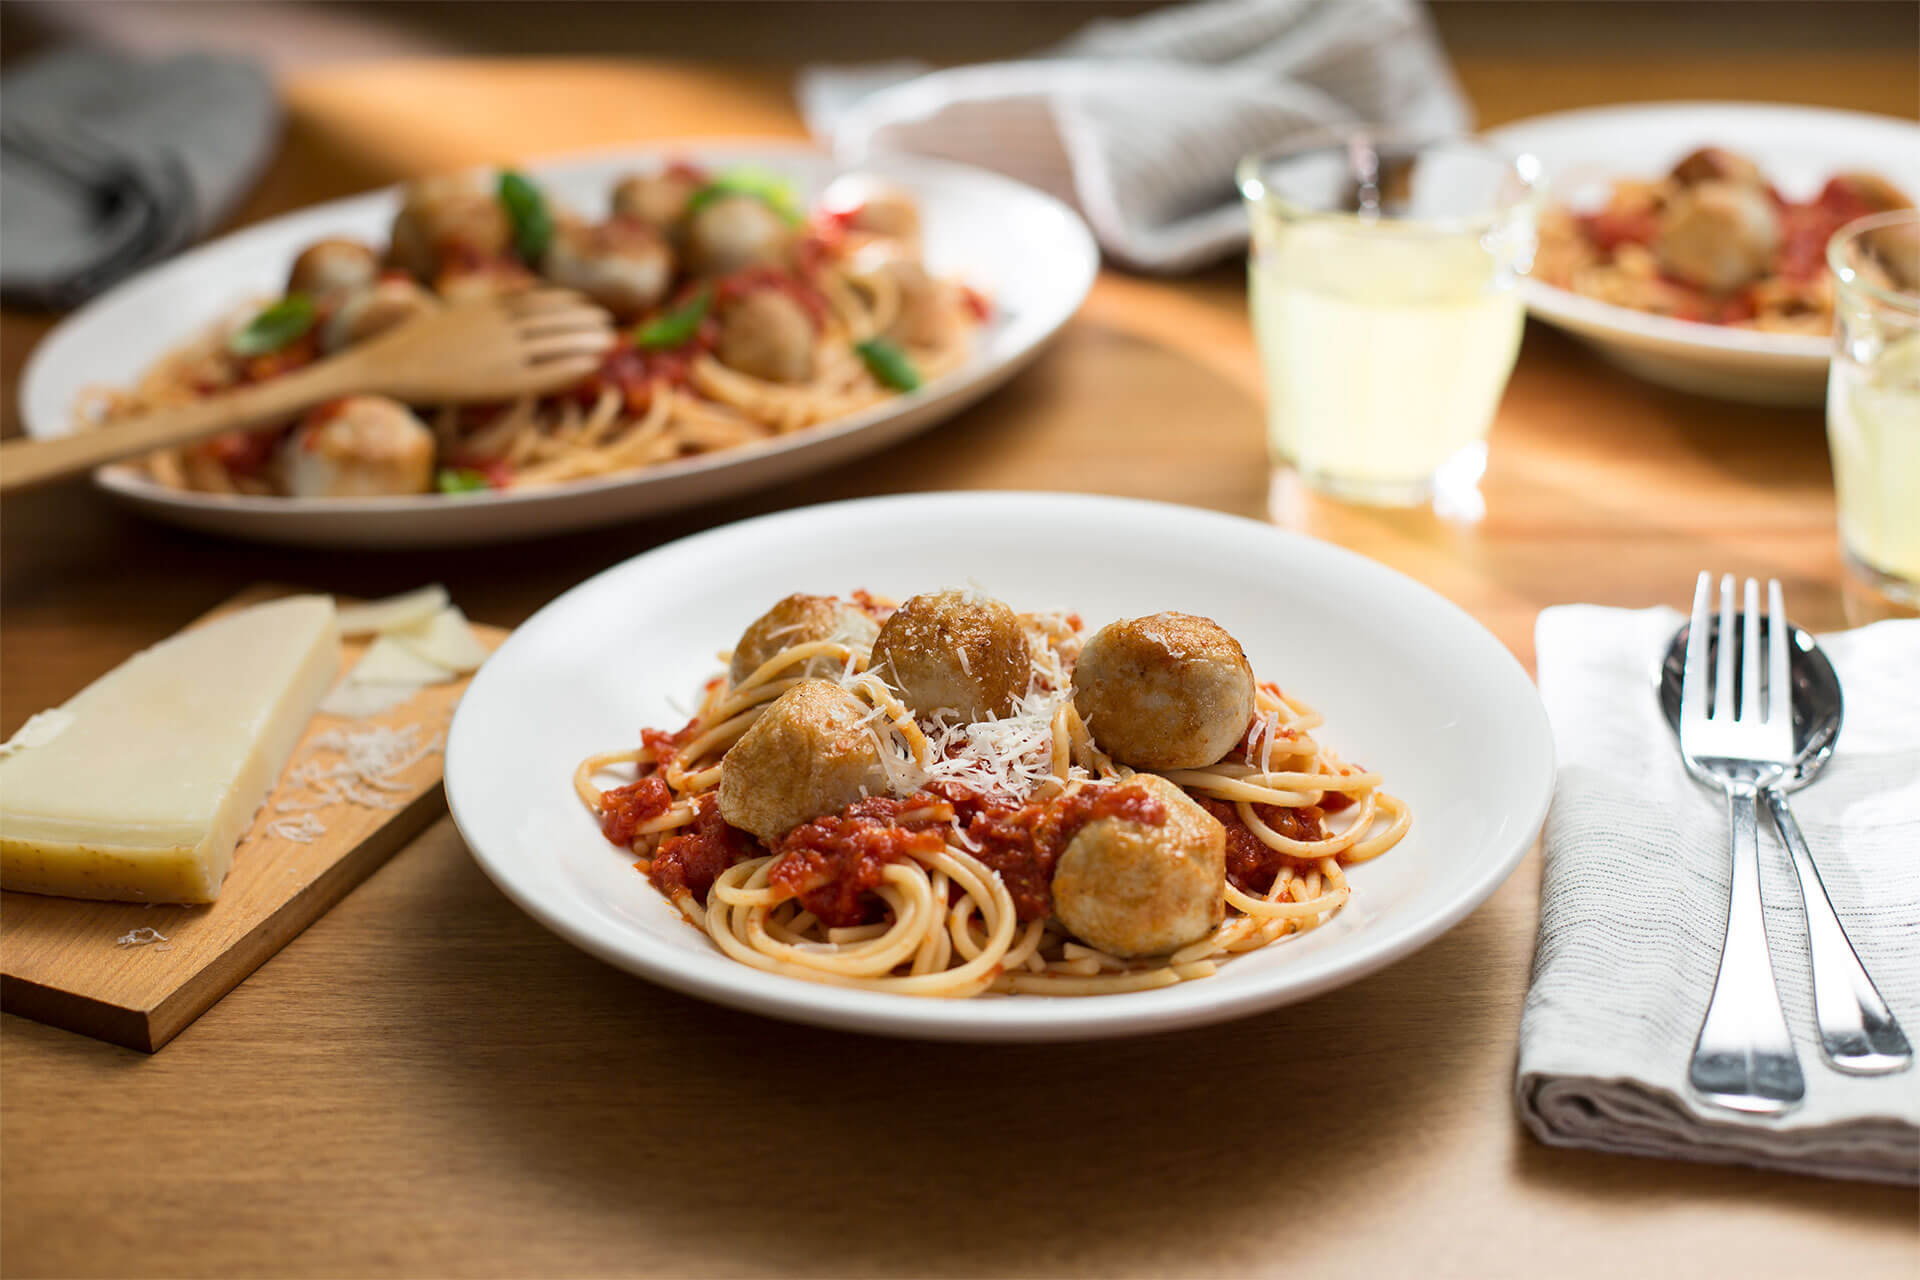 Spaghetti and Pork Meatballs